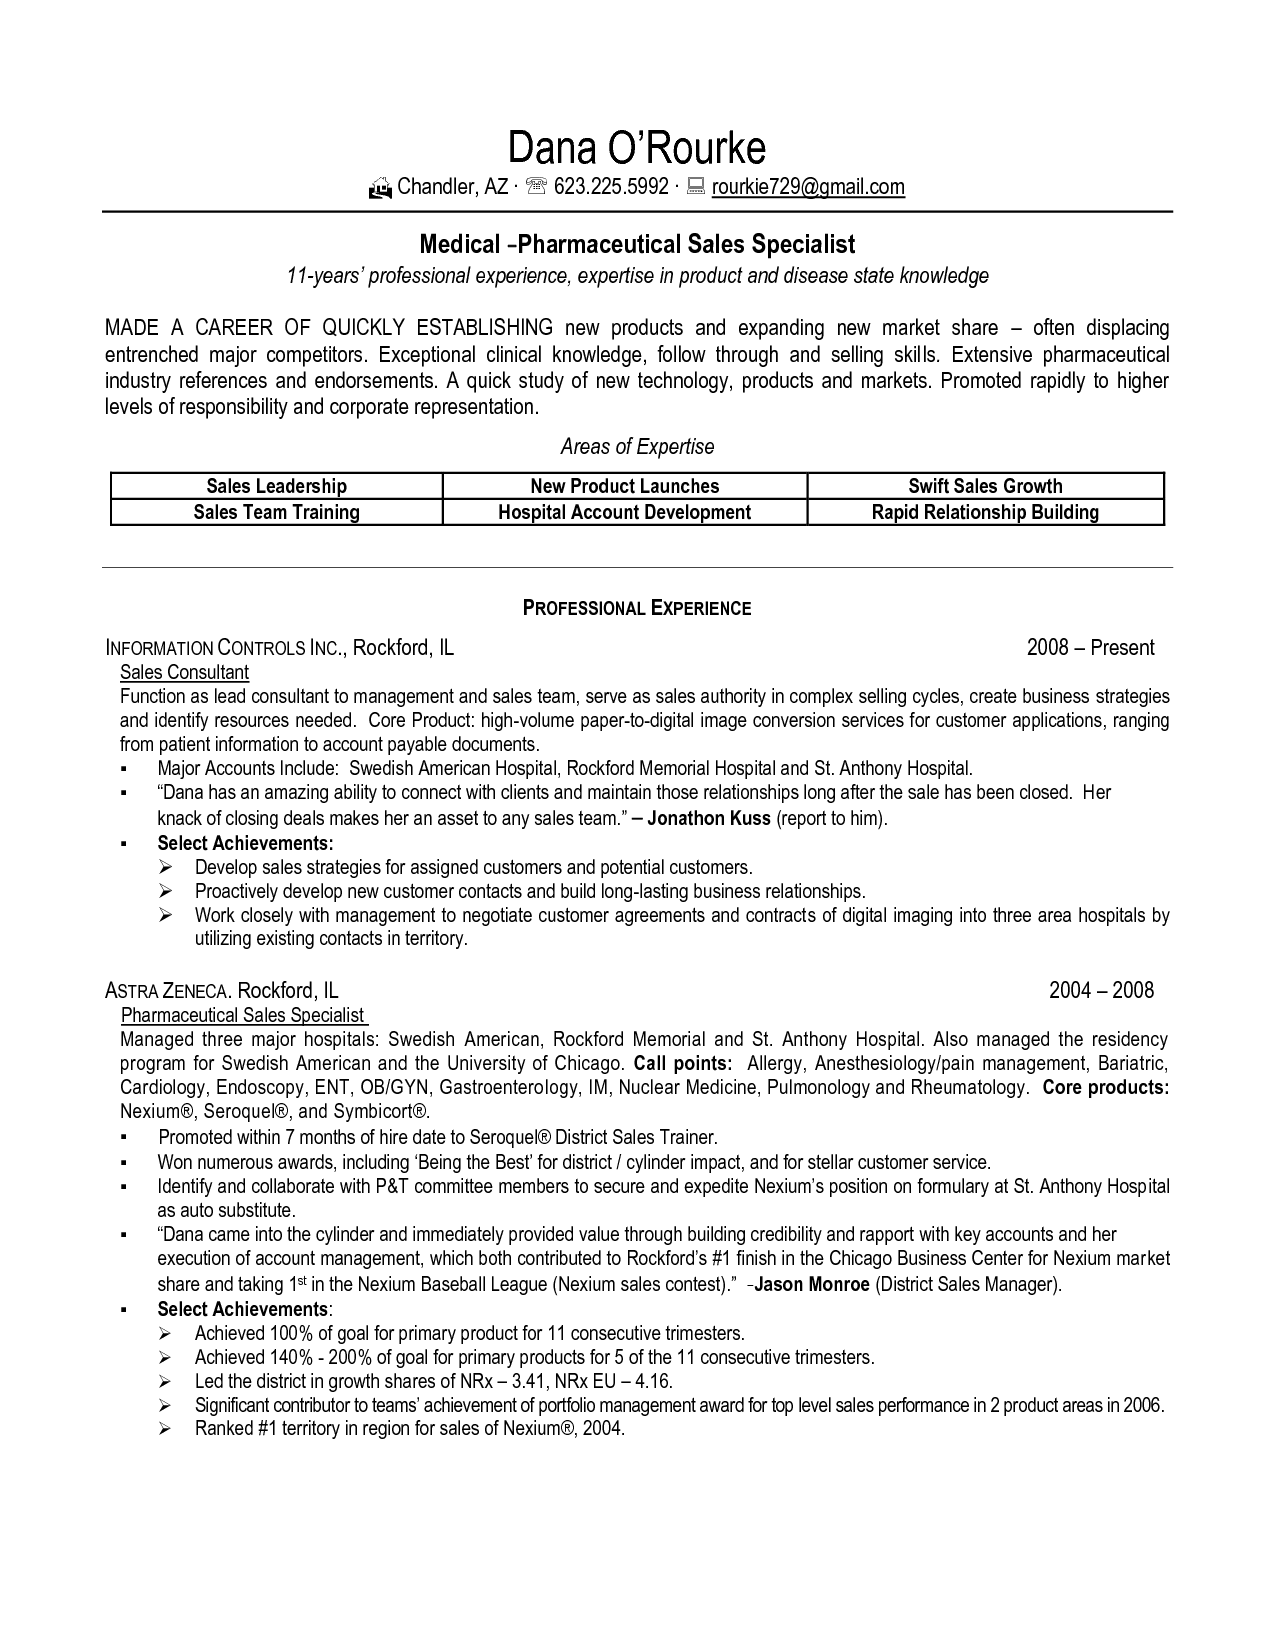 pharmaceutical s representative resume objective s resume templates communications skills open class resume testing resume furthermore resume multiple positions same company